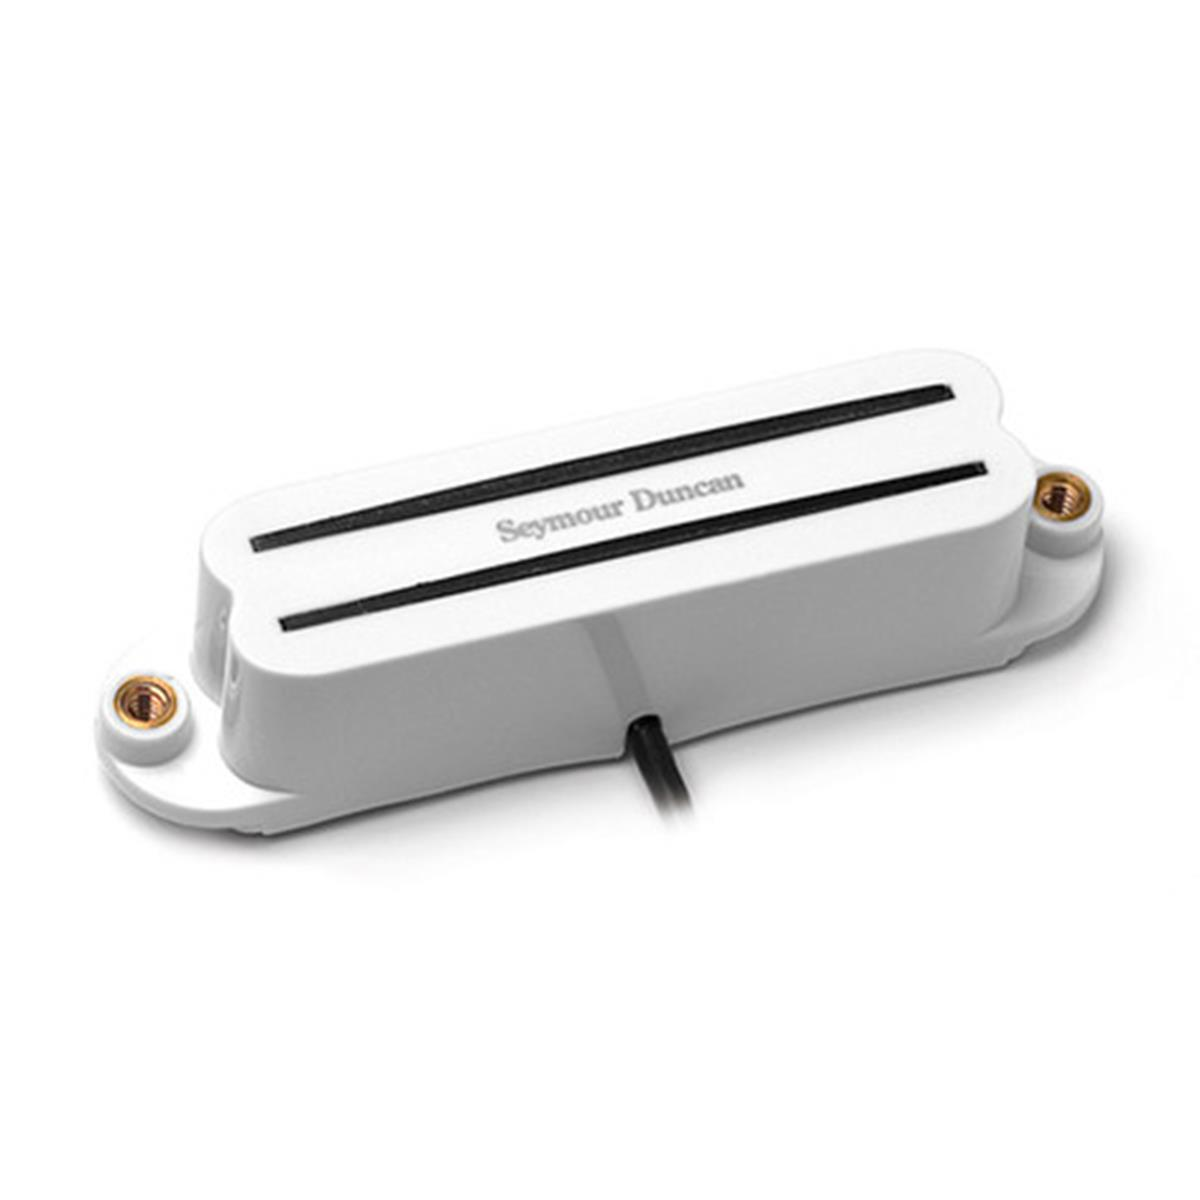 SEYMOUR-DUNCAN SHR 1 HOT RAILS BRIDGE WHITE 1120502W